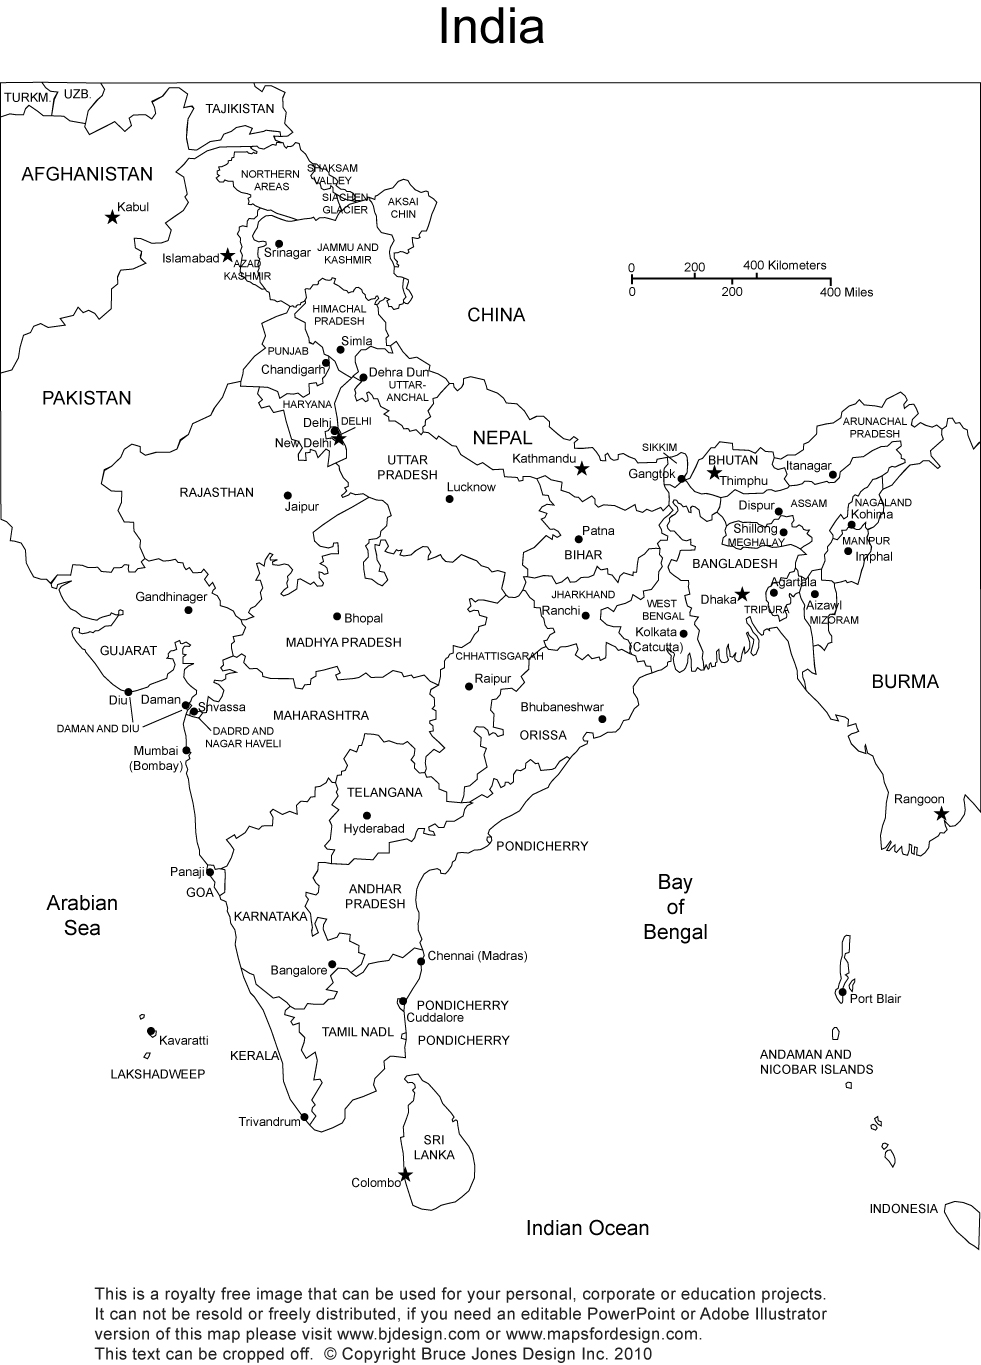 India Printable Blank Maps Outline Maps Royalty Free - Us map with states outlines 8 1 2 x 11